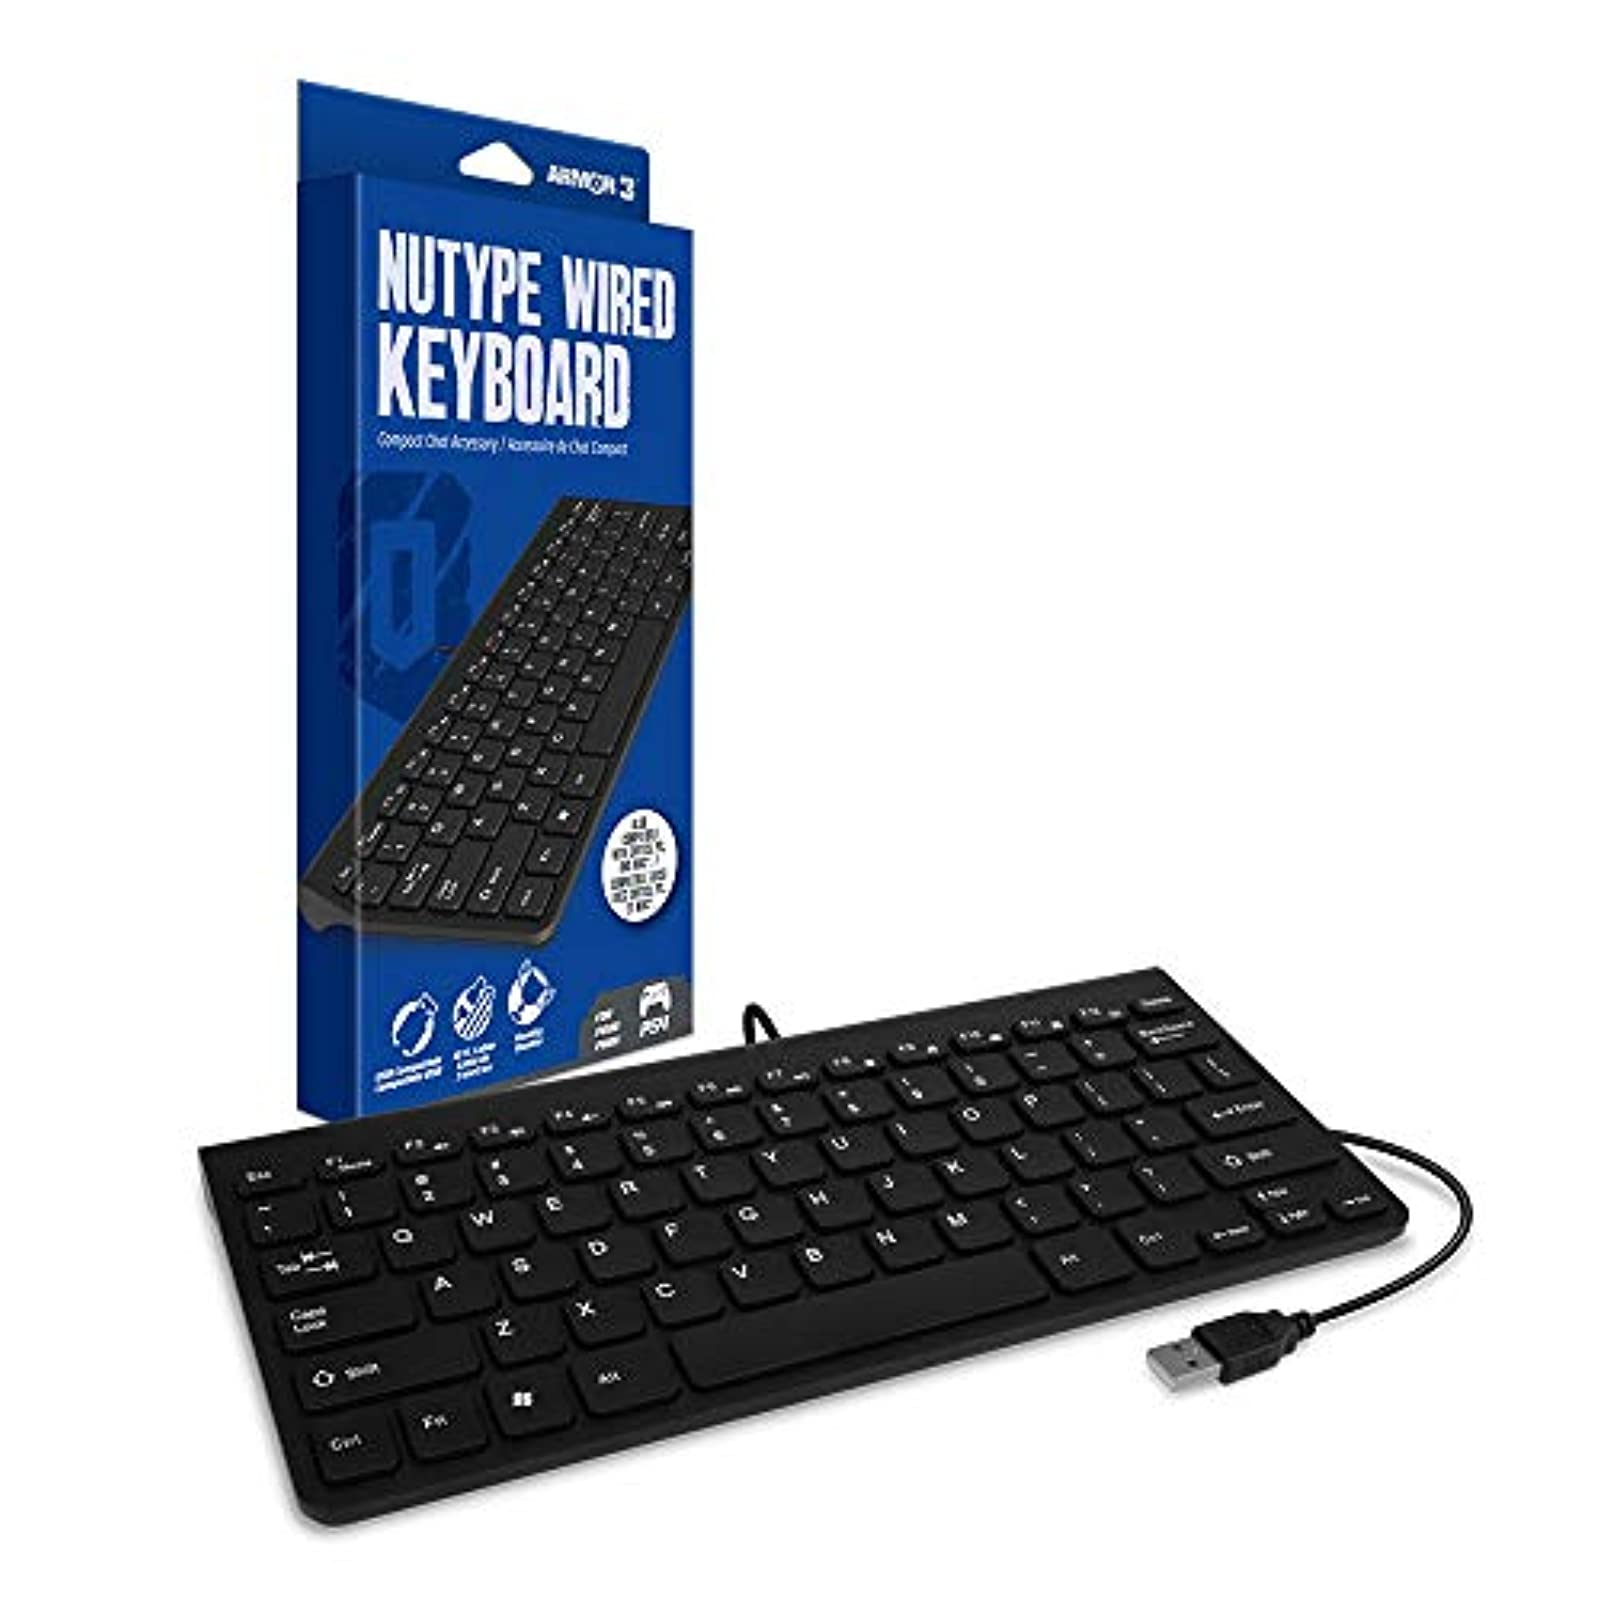 Armor3 Nutype Wired Keyboard For PS4 For PlayStation 4